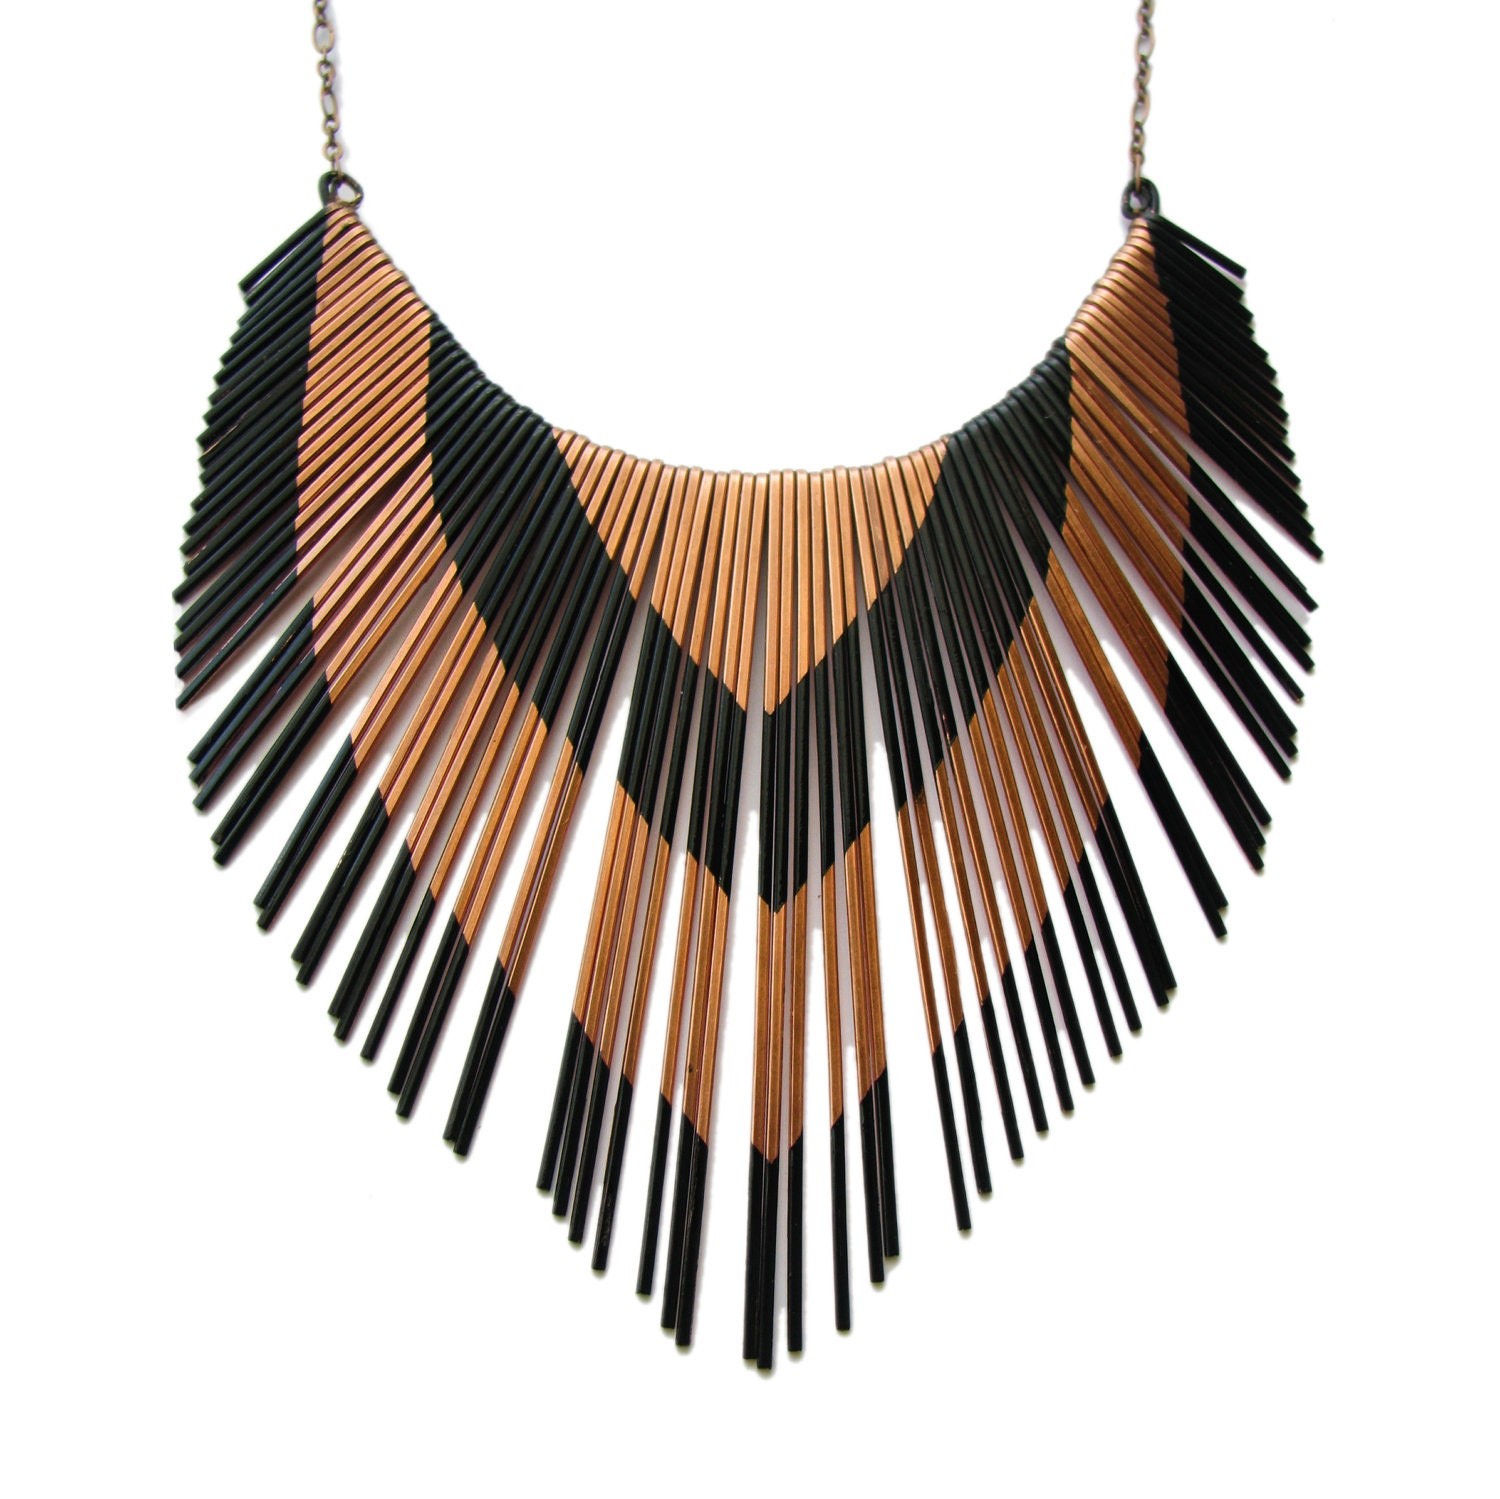 Porcupine Quill Jewelry Copper Necklace Metal ...